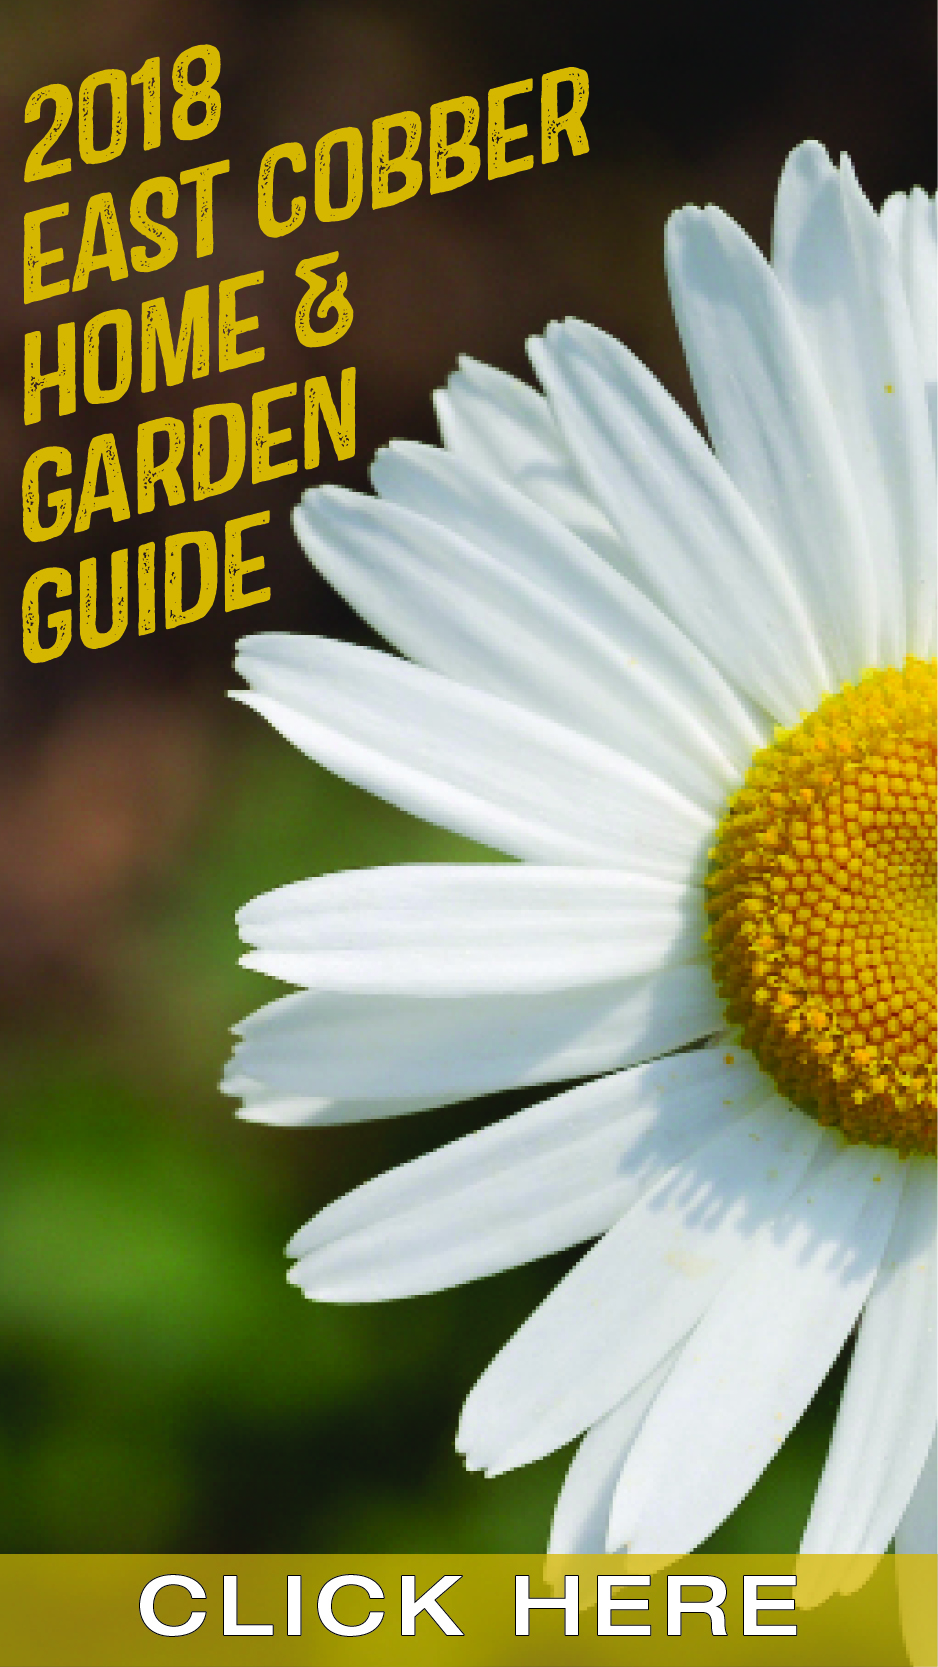 Download the 2018 East Cobber Home and Garden Guide